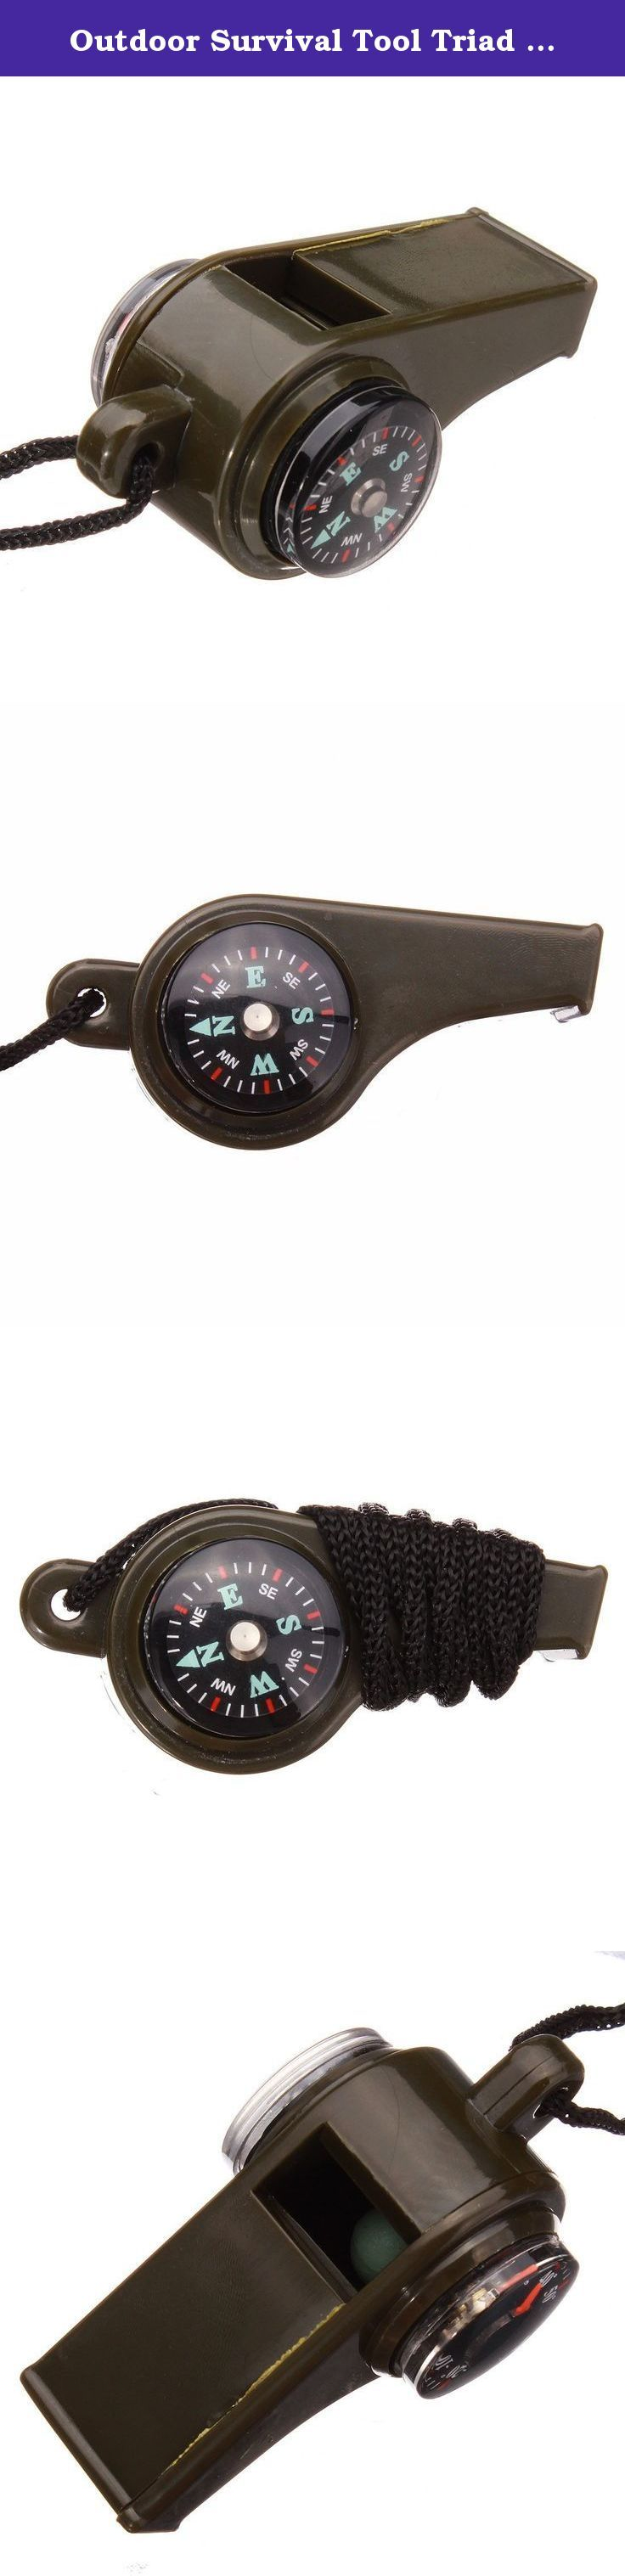 Outdoor Survival Tool Triad Whistle Compass Thermometer With Hang Rope by Double Rainbow. Outdoor Survival Tool Triad Whistle Compass Thermometer With Hang Rope by Double Rainbow.